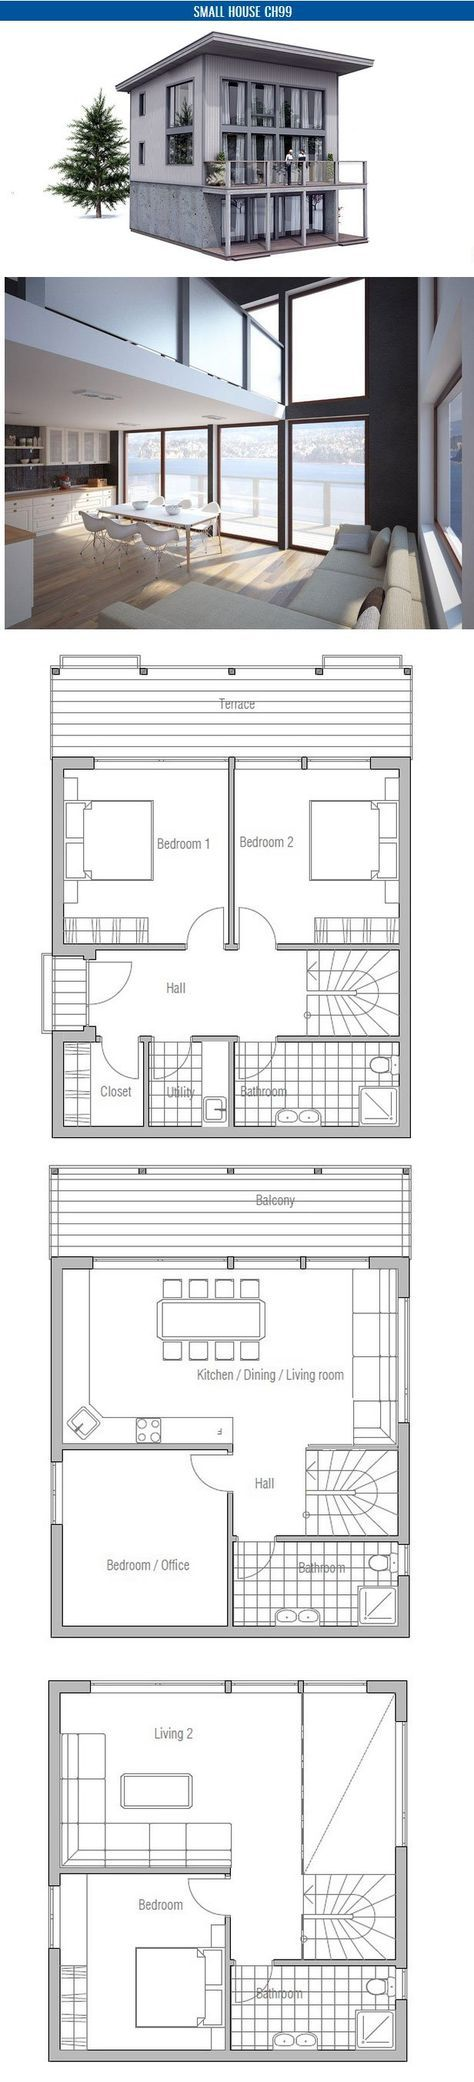 Small House Plan With Four Bedrooms Simple Lines And Shapes